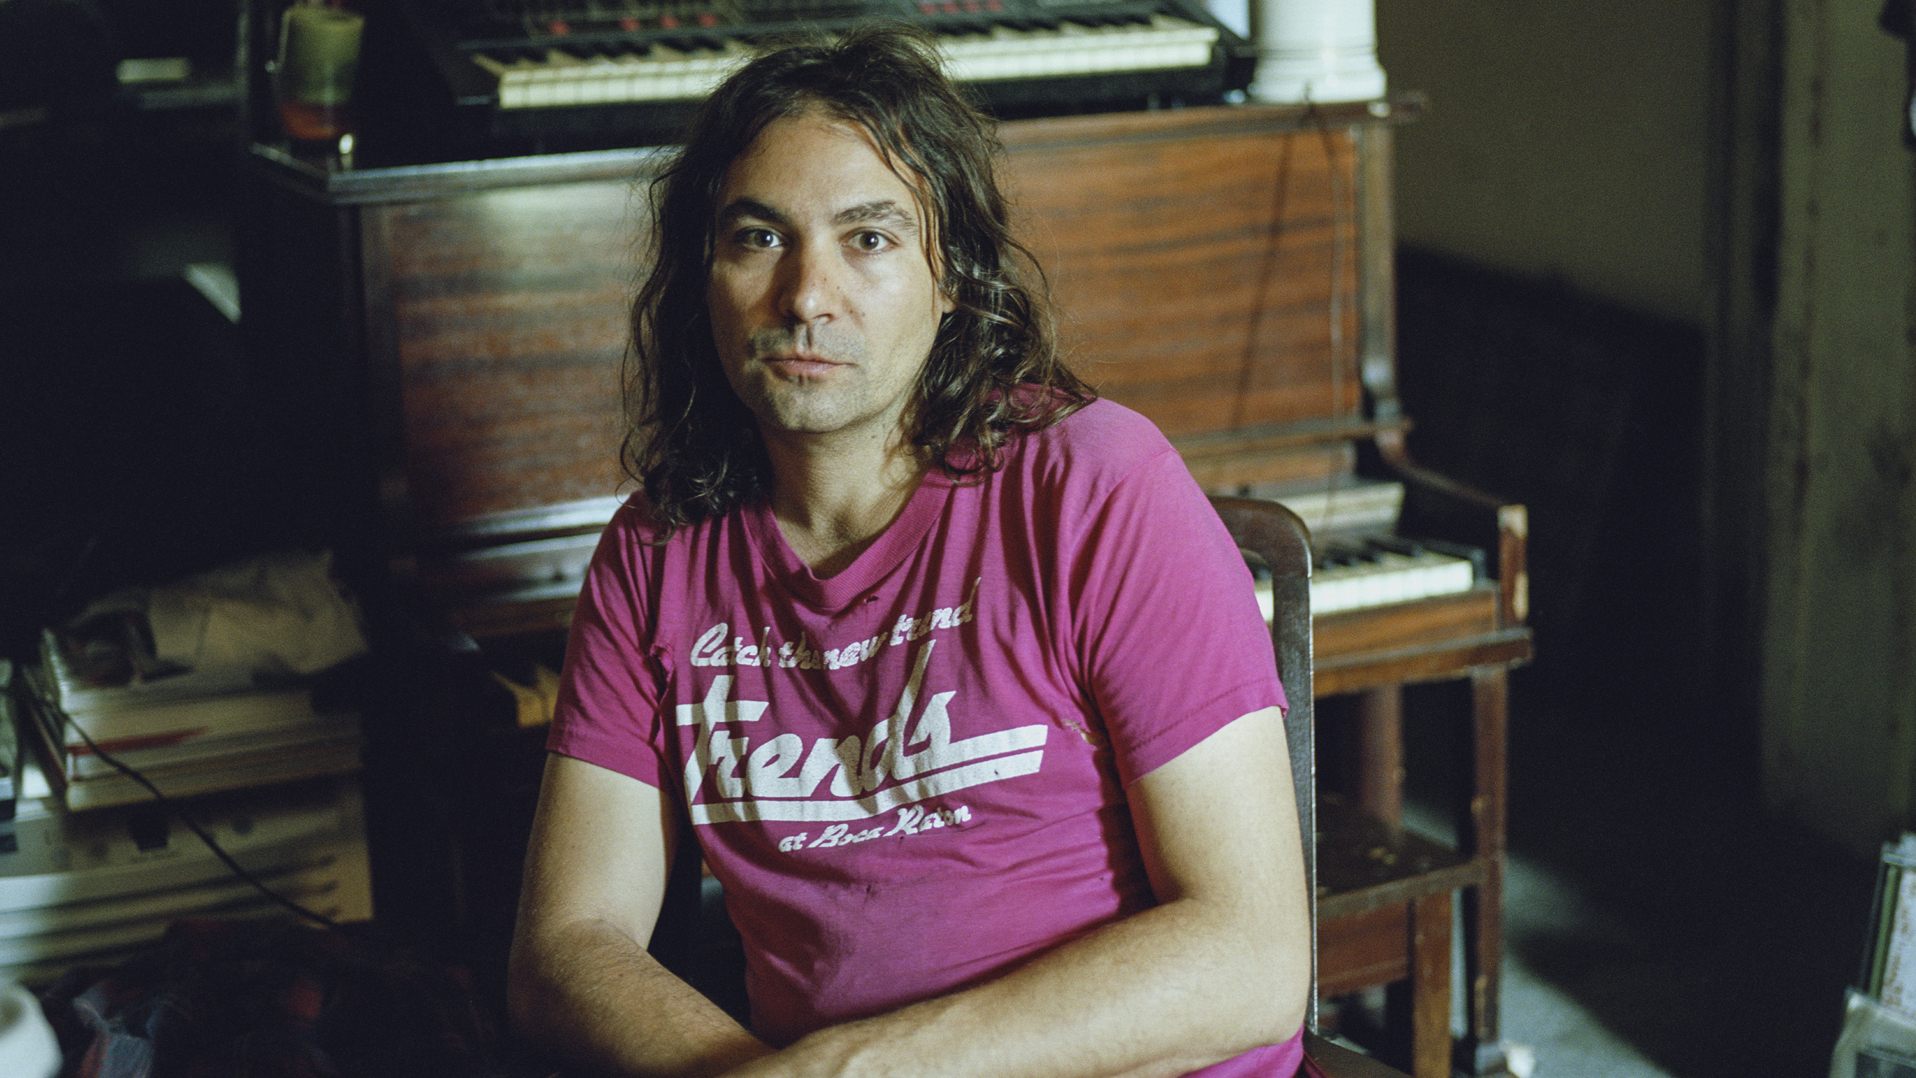 The War on Drugs confirmados no Vodafone Paredes de Coura